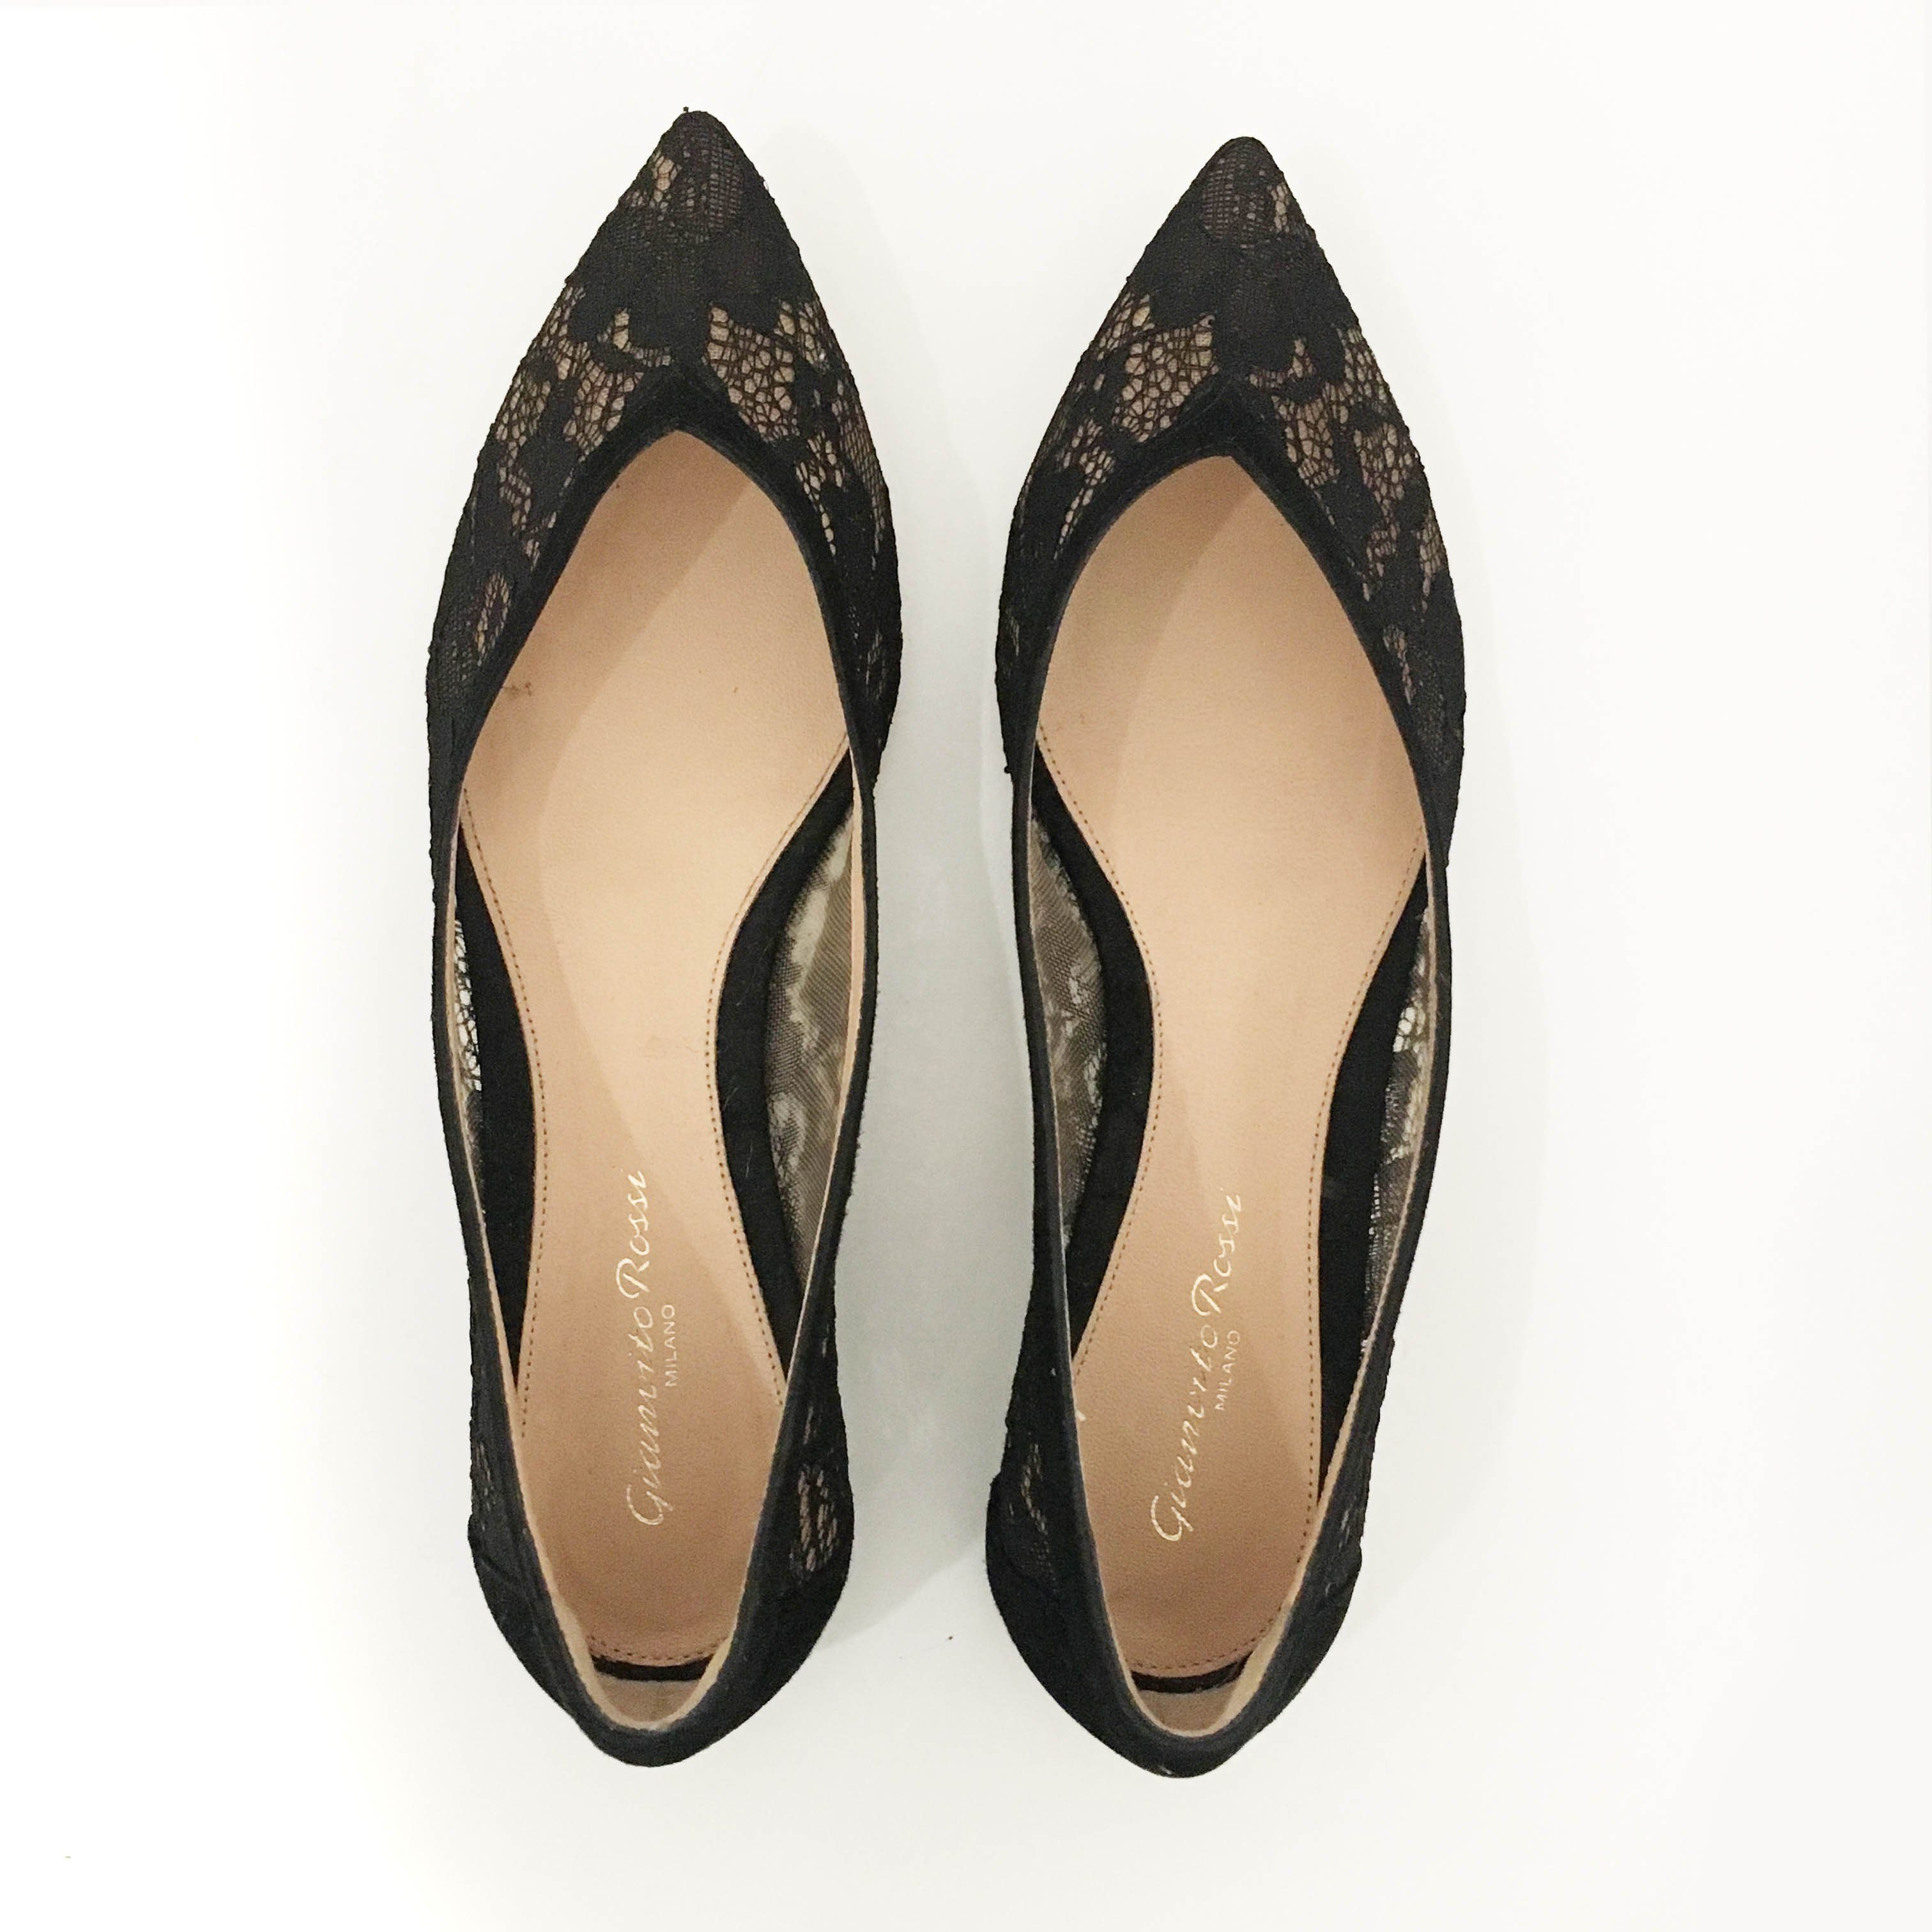 Gianvito Rossi Lace and Suede Pointed Toe Flats